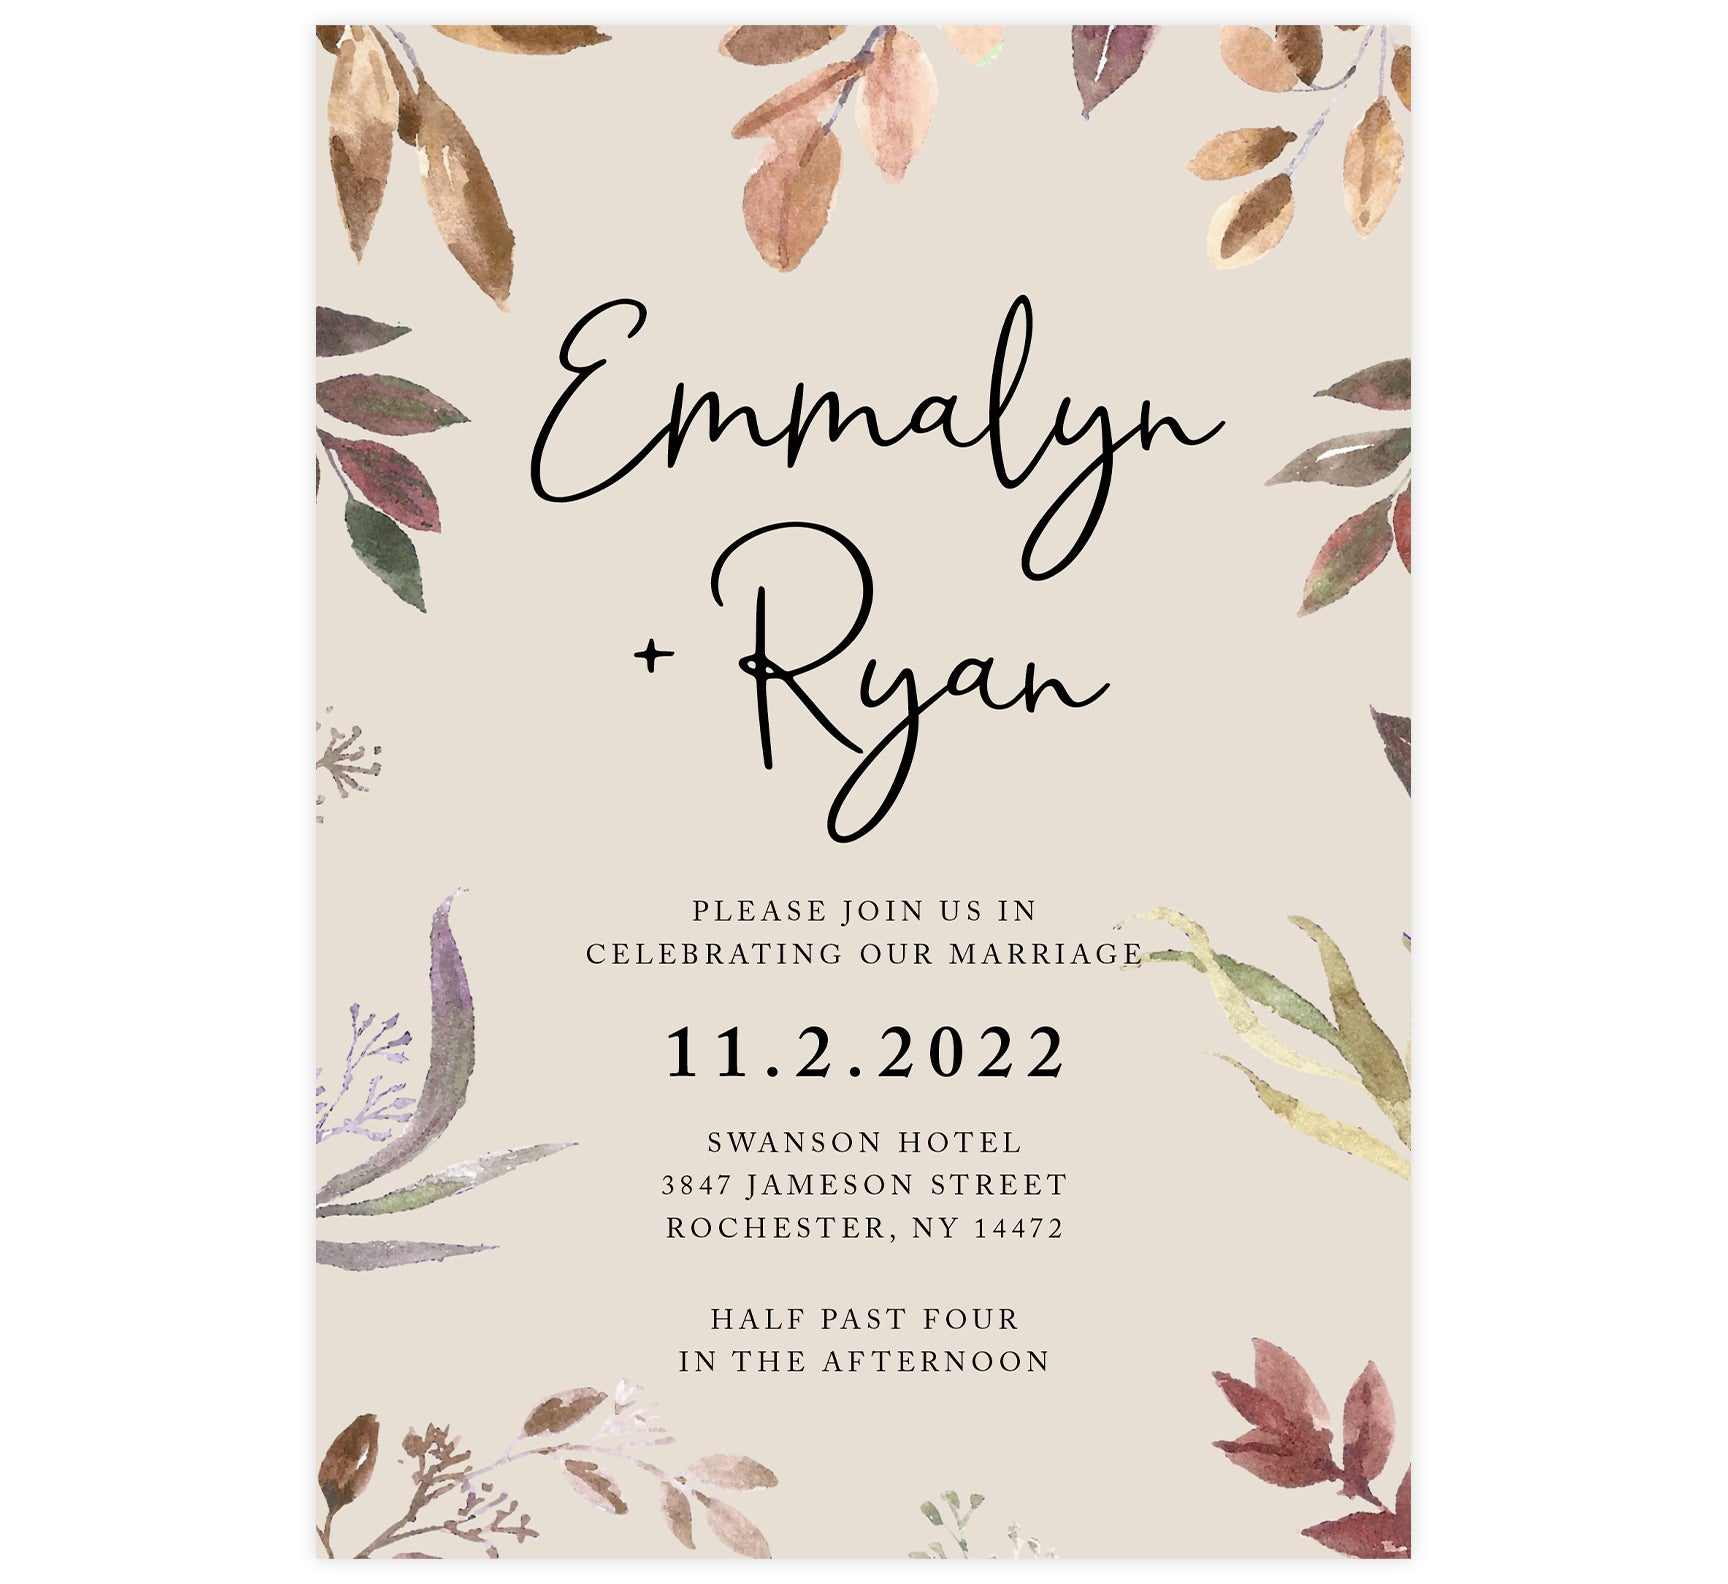 Golden Leaves wedding invitation; cream background with neutral colored watercolor leaves coming in from the edges and black text